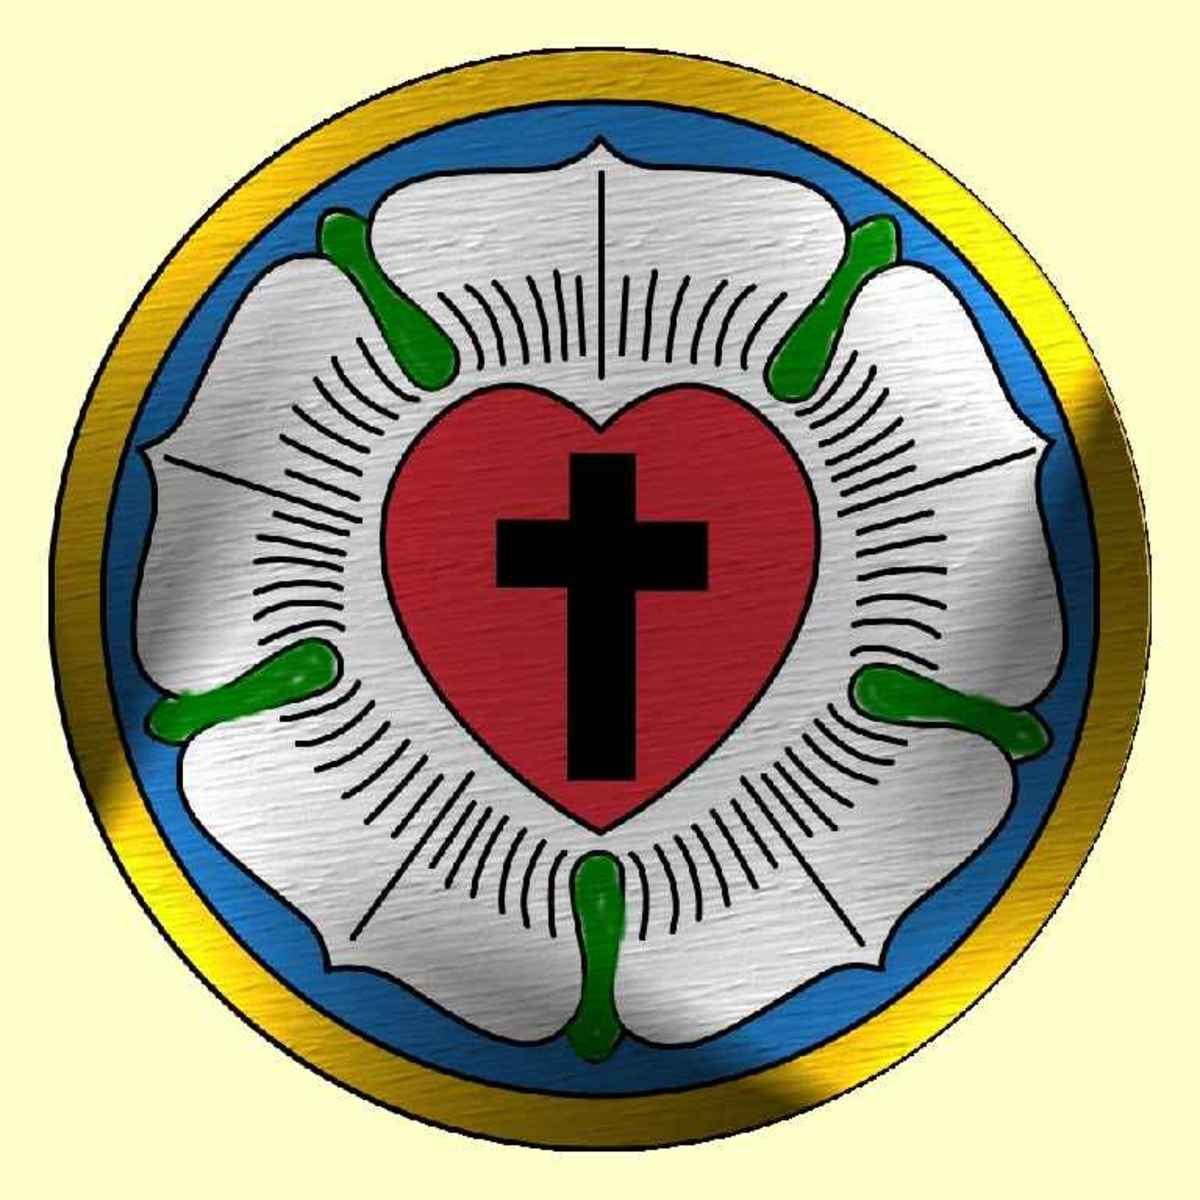 Martin Luther's mark or seal. Notice the black cross, as mentioned in the Jesuit's initiation.